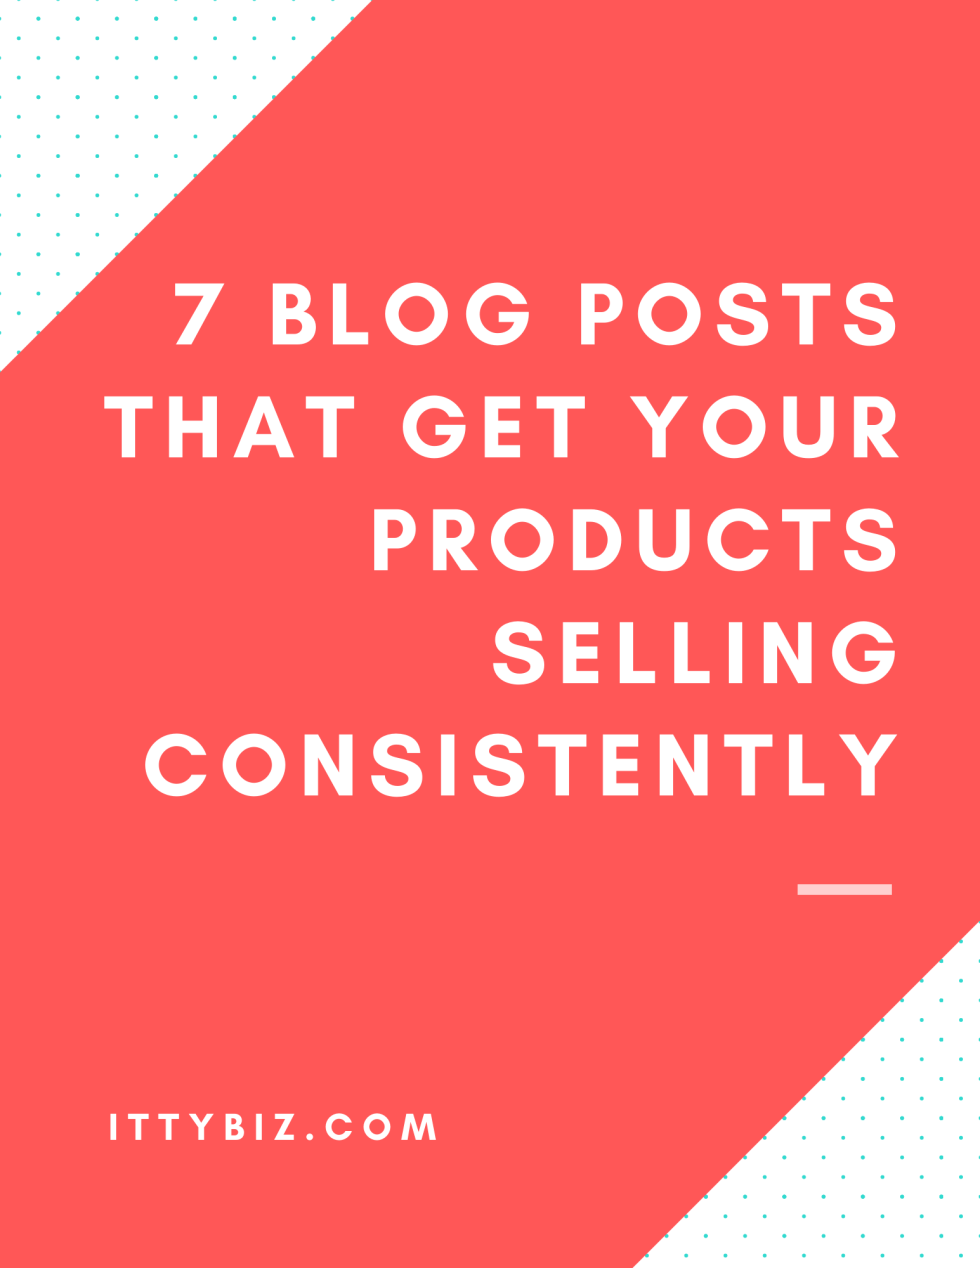 7 Blog Posts That Get Your Products Selling Consistently